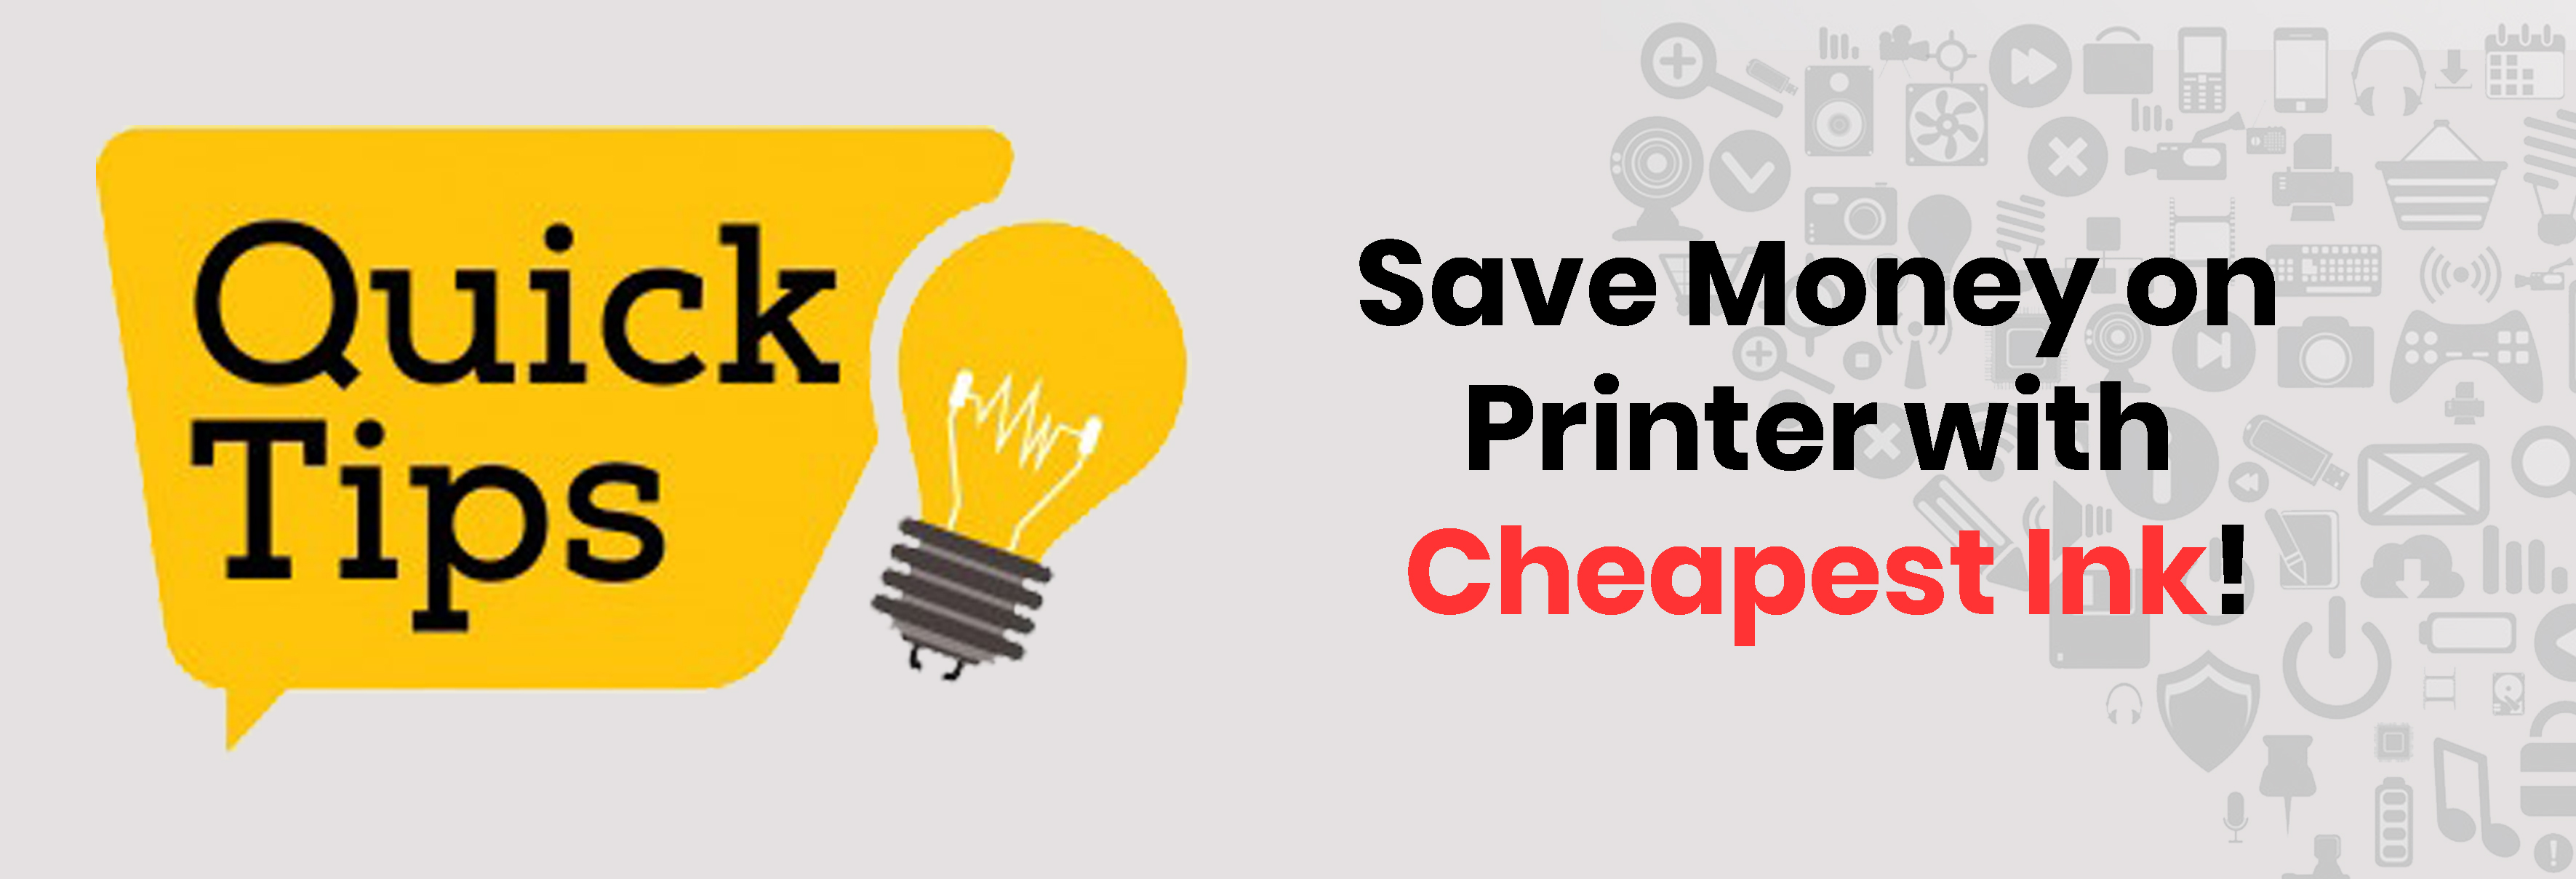 Save Money on Printer with Cheapest Ink: 5 important tips!